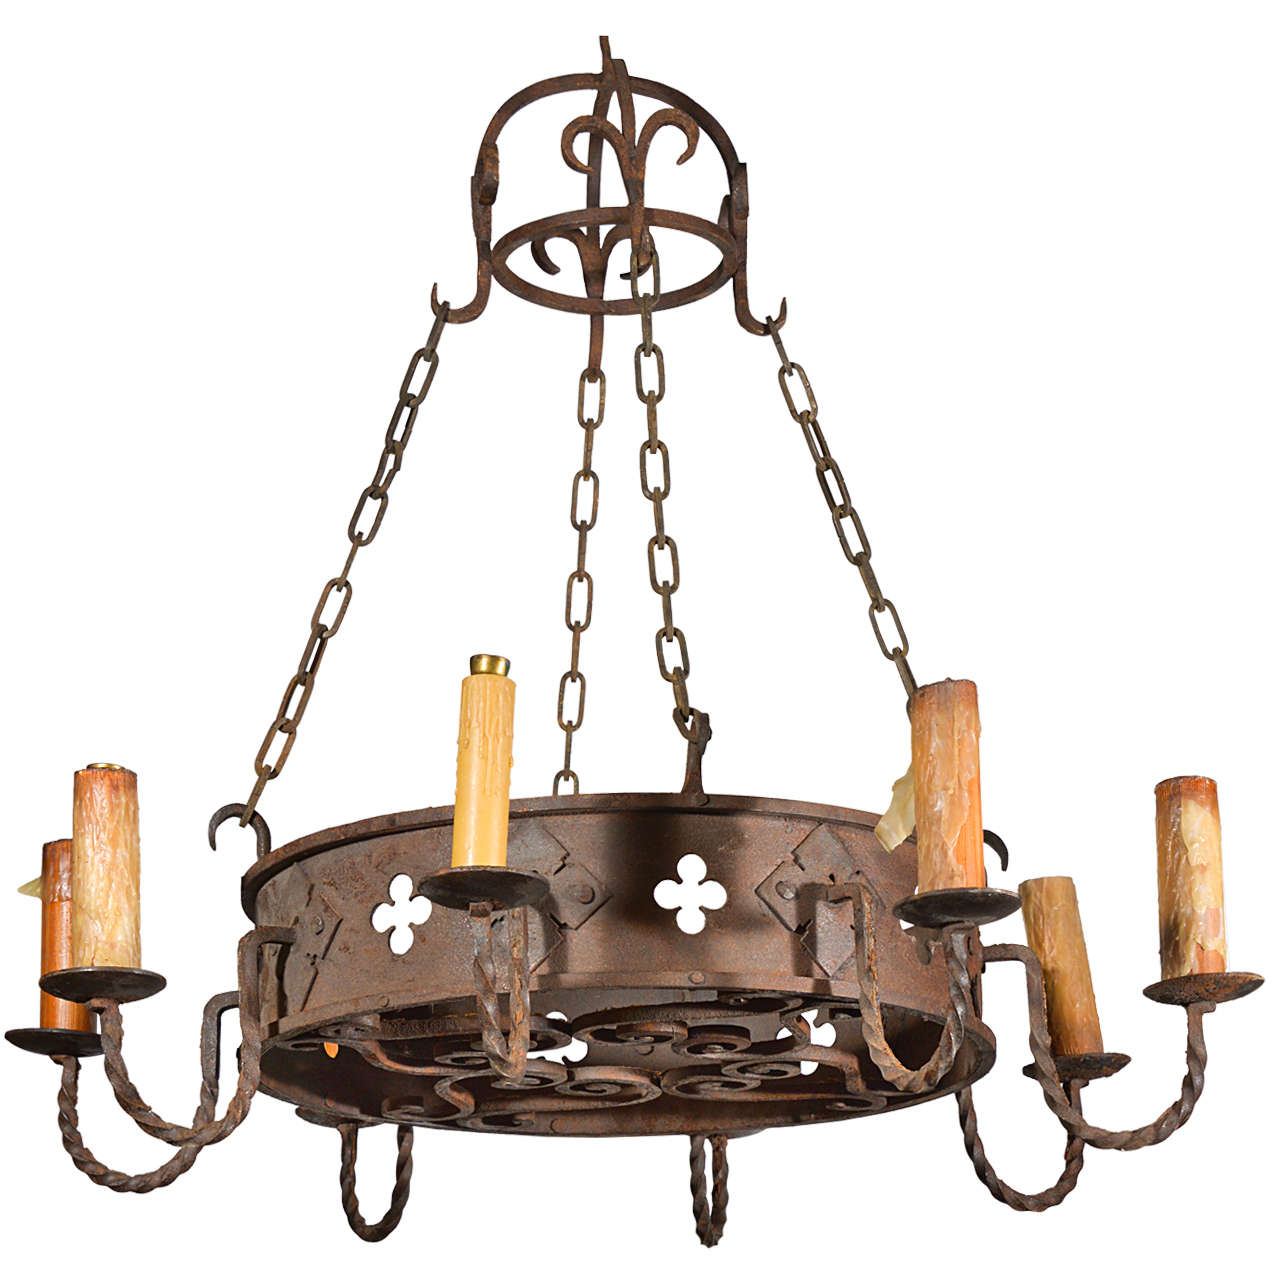 Round antique iron chandelier from france circa 1900 for sale at round antique iron chandelier from france circa 1900 for sale aloadofball